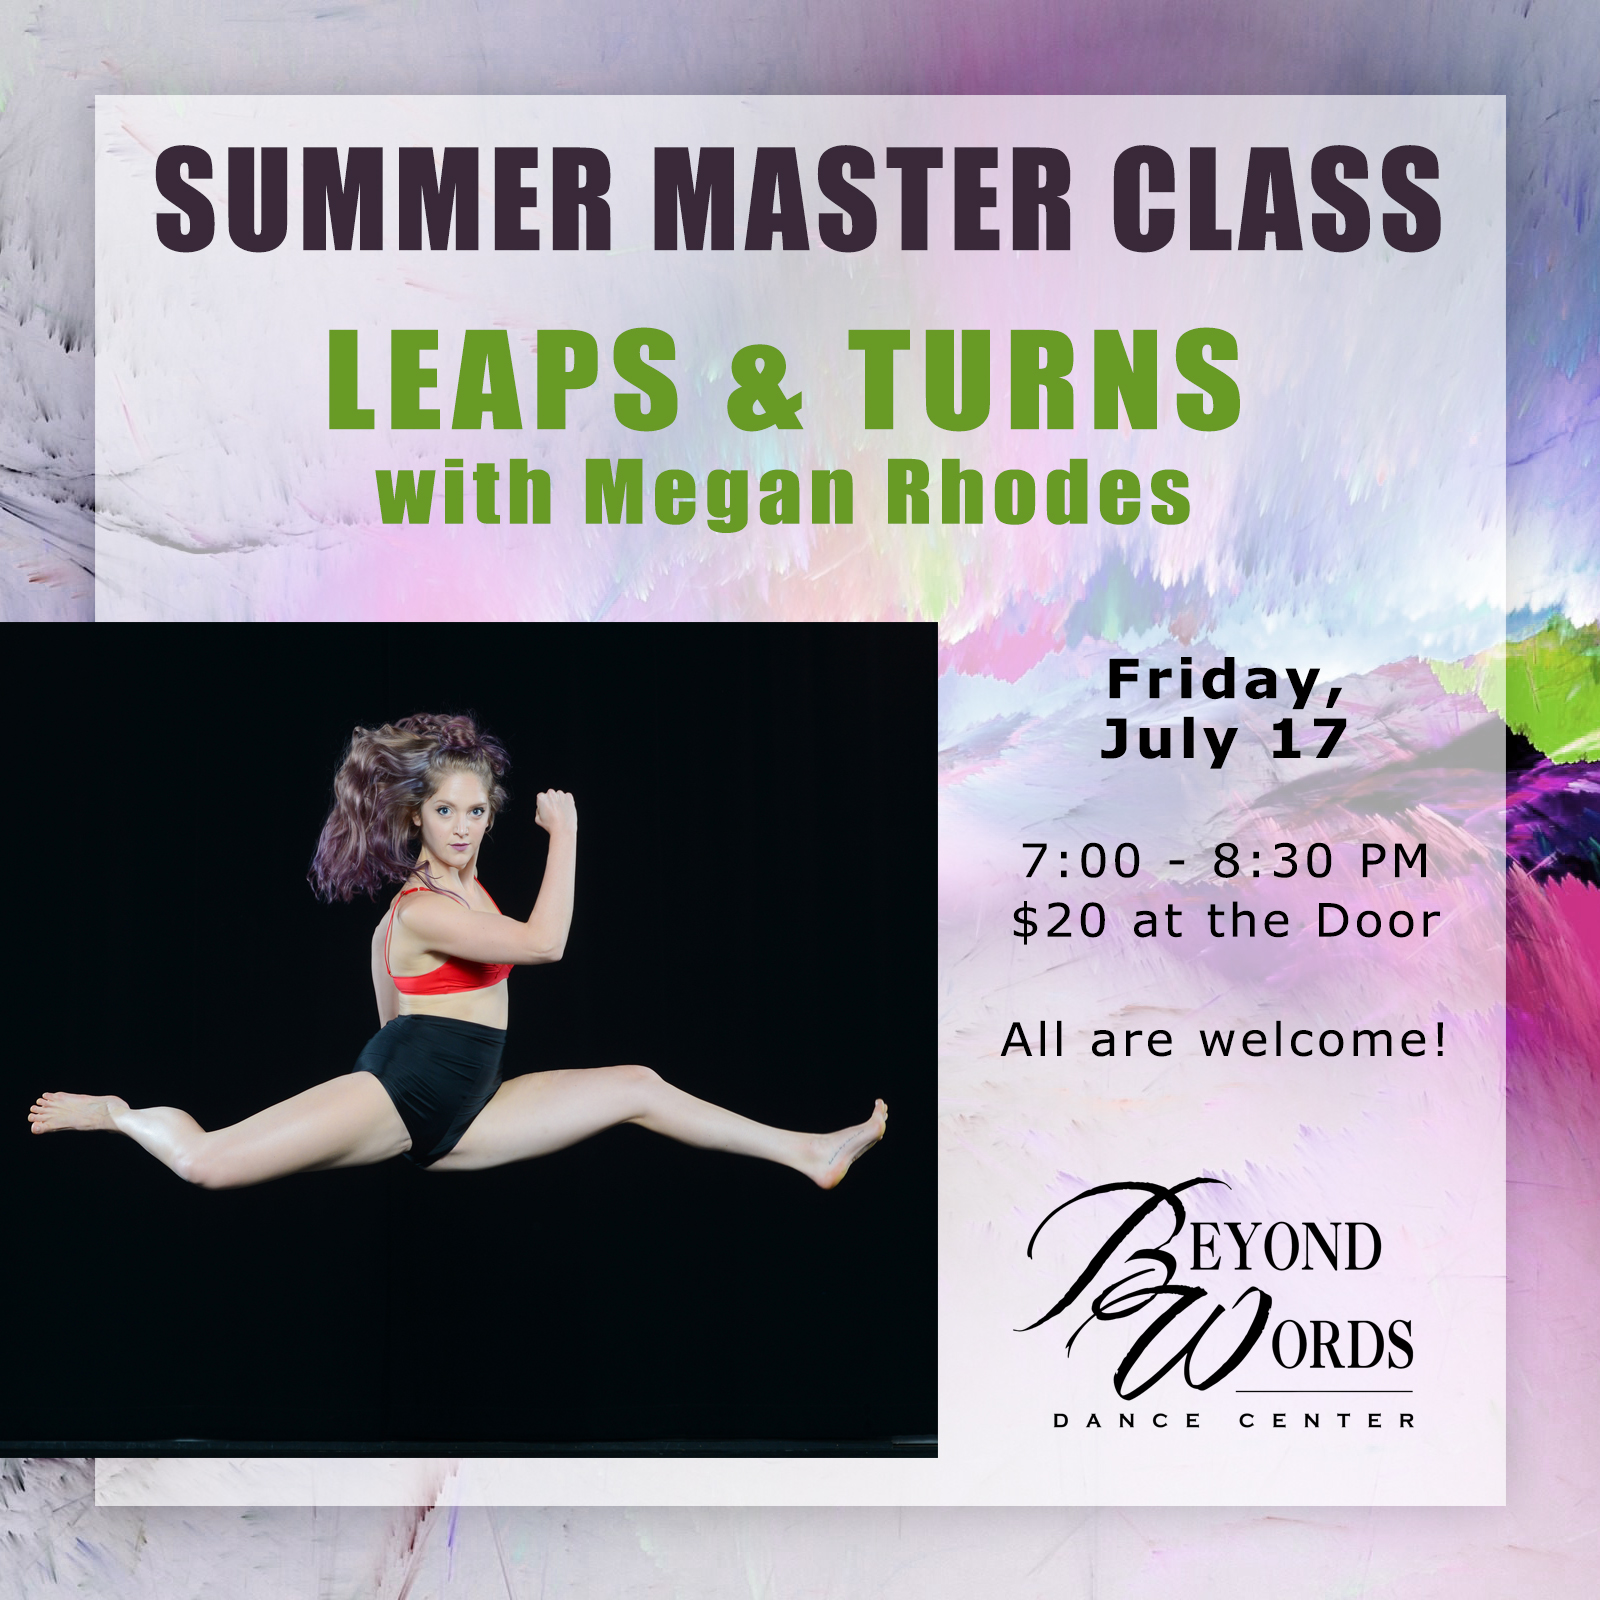 Summer Master Class - Leaps & Turns